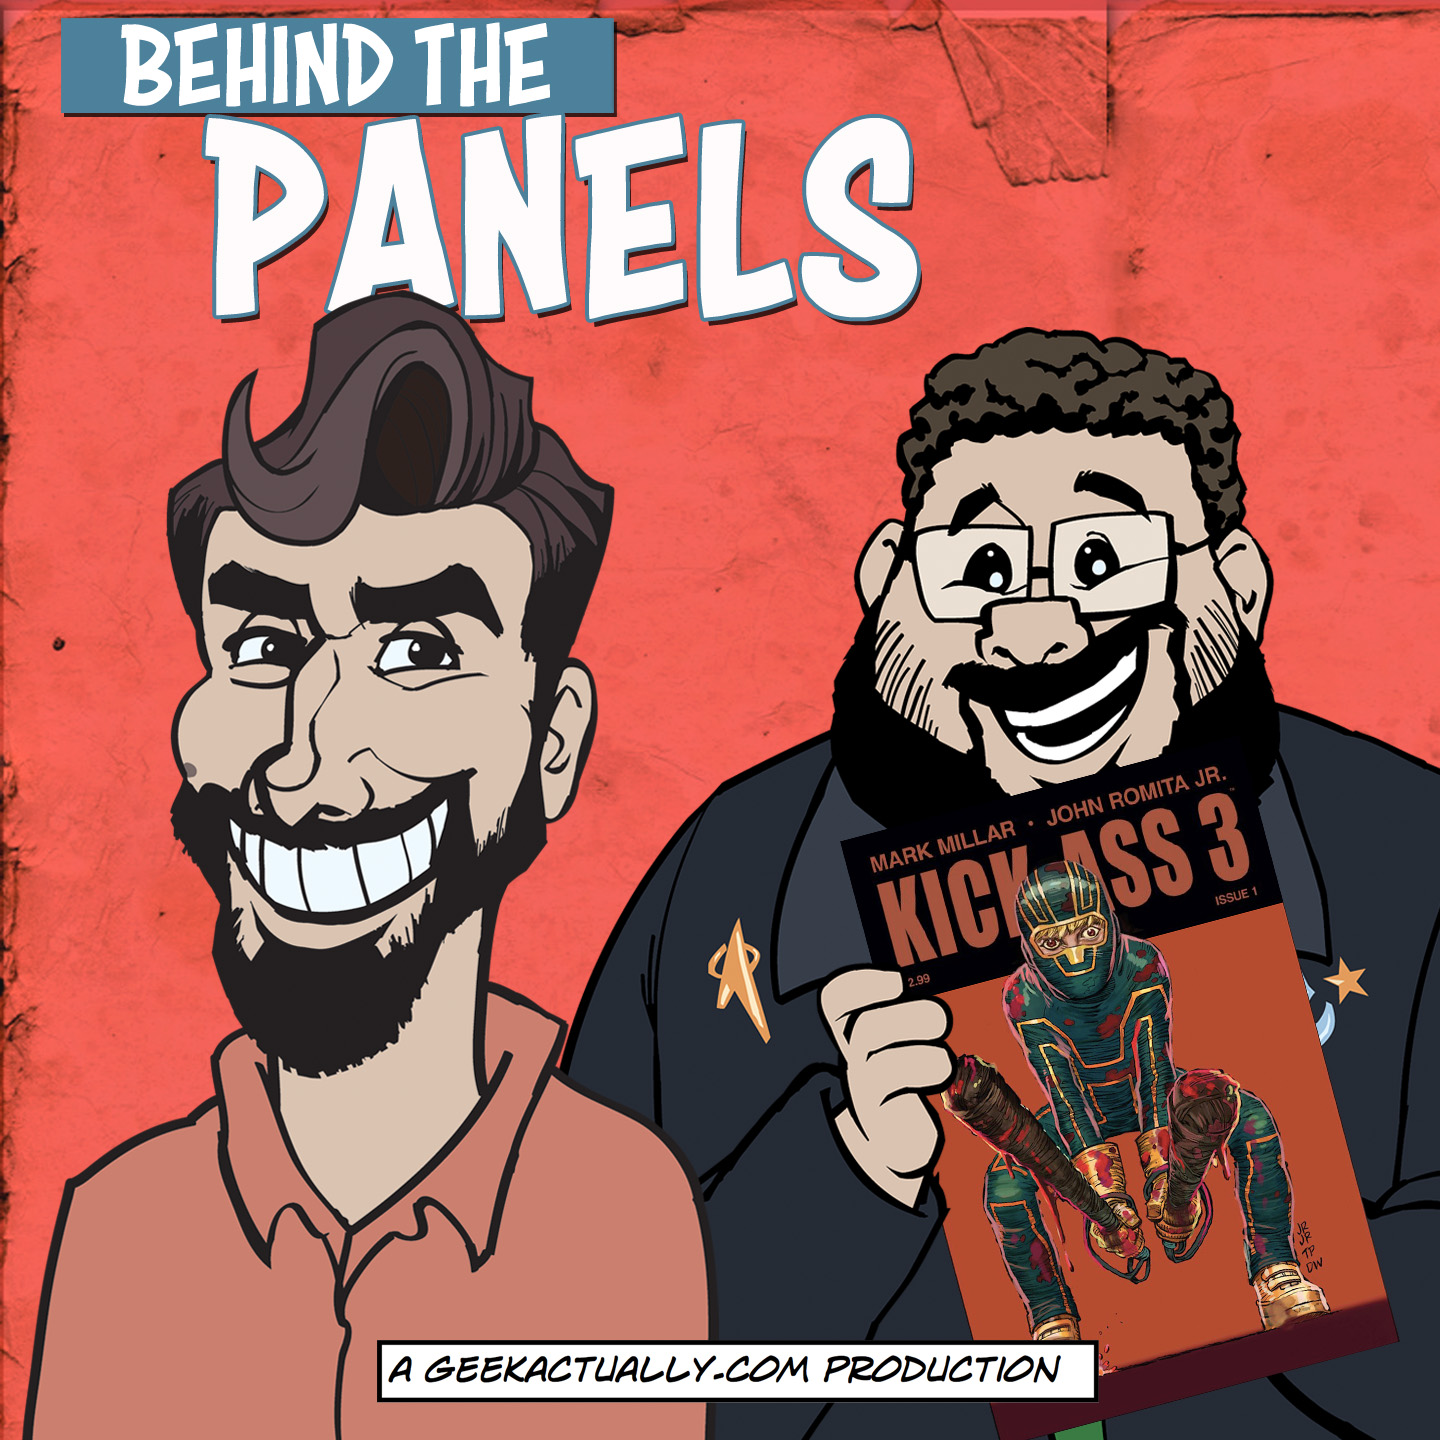 Behind The Panels Issue 104 €� Kickass 3